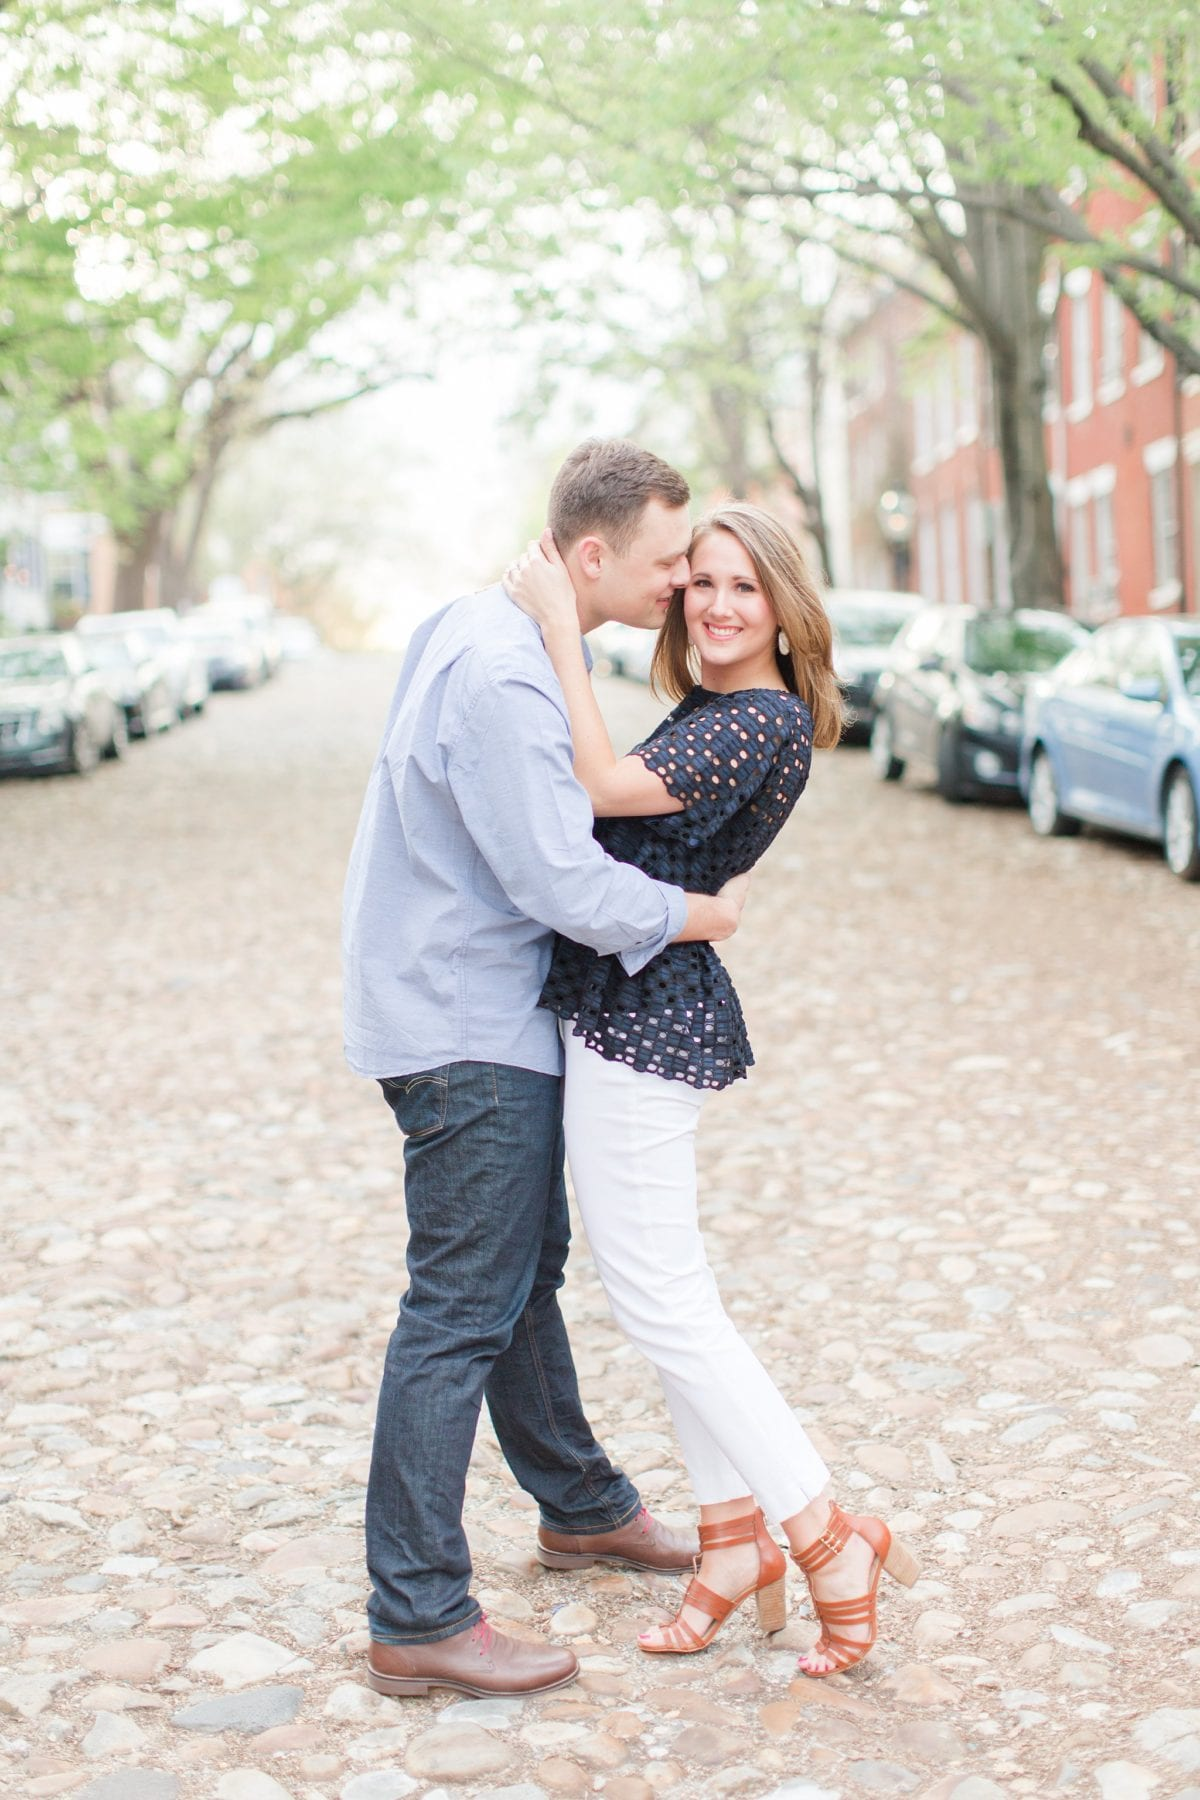 Springtime Old Town Alexandria Engagement Session Matt & Maxie Megan Kelsey Photography-219.jpg